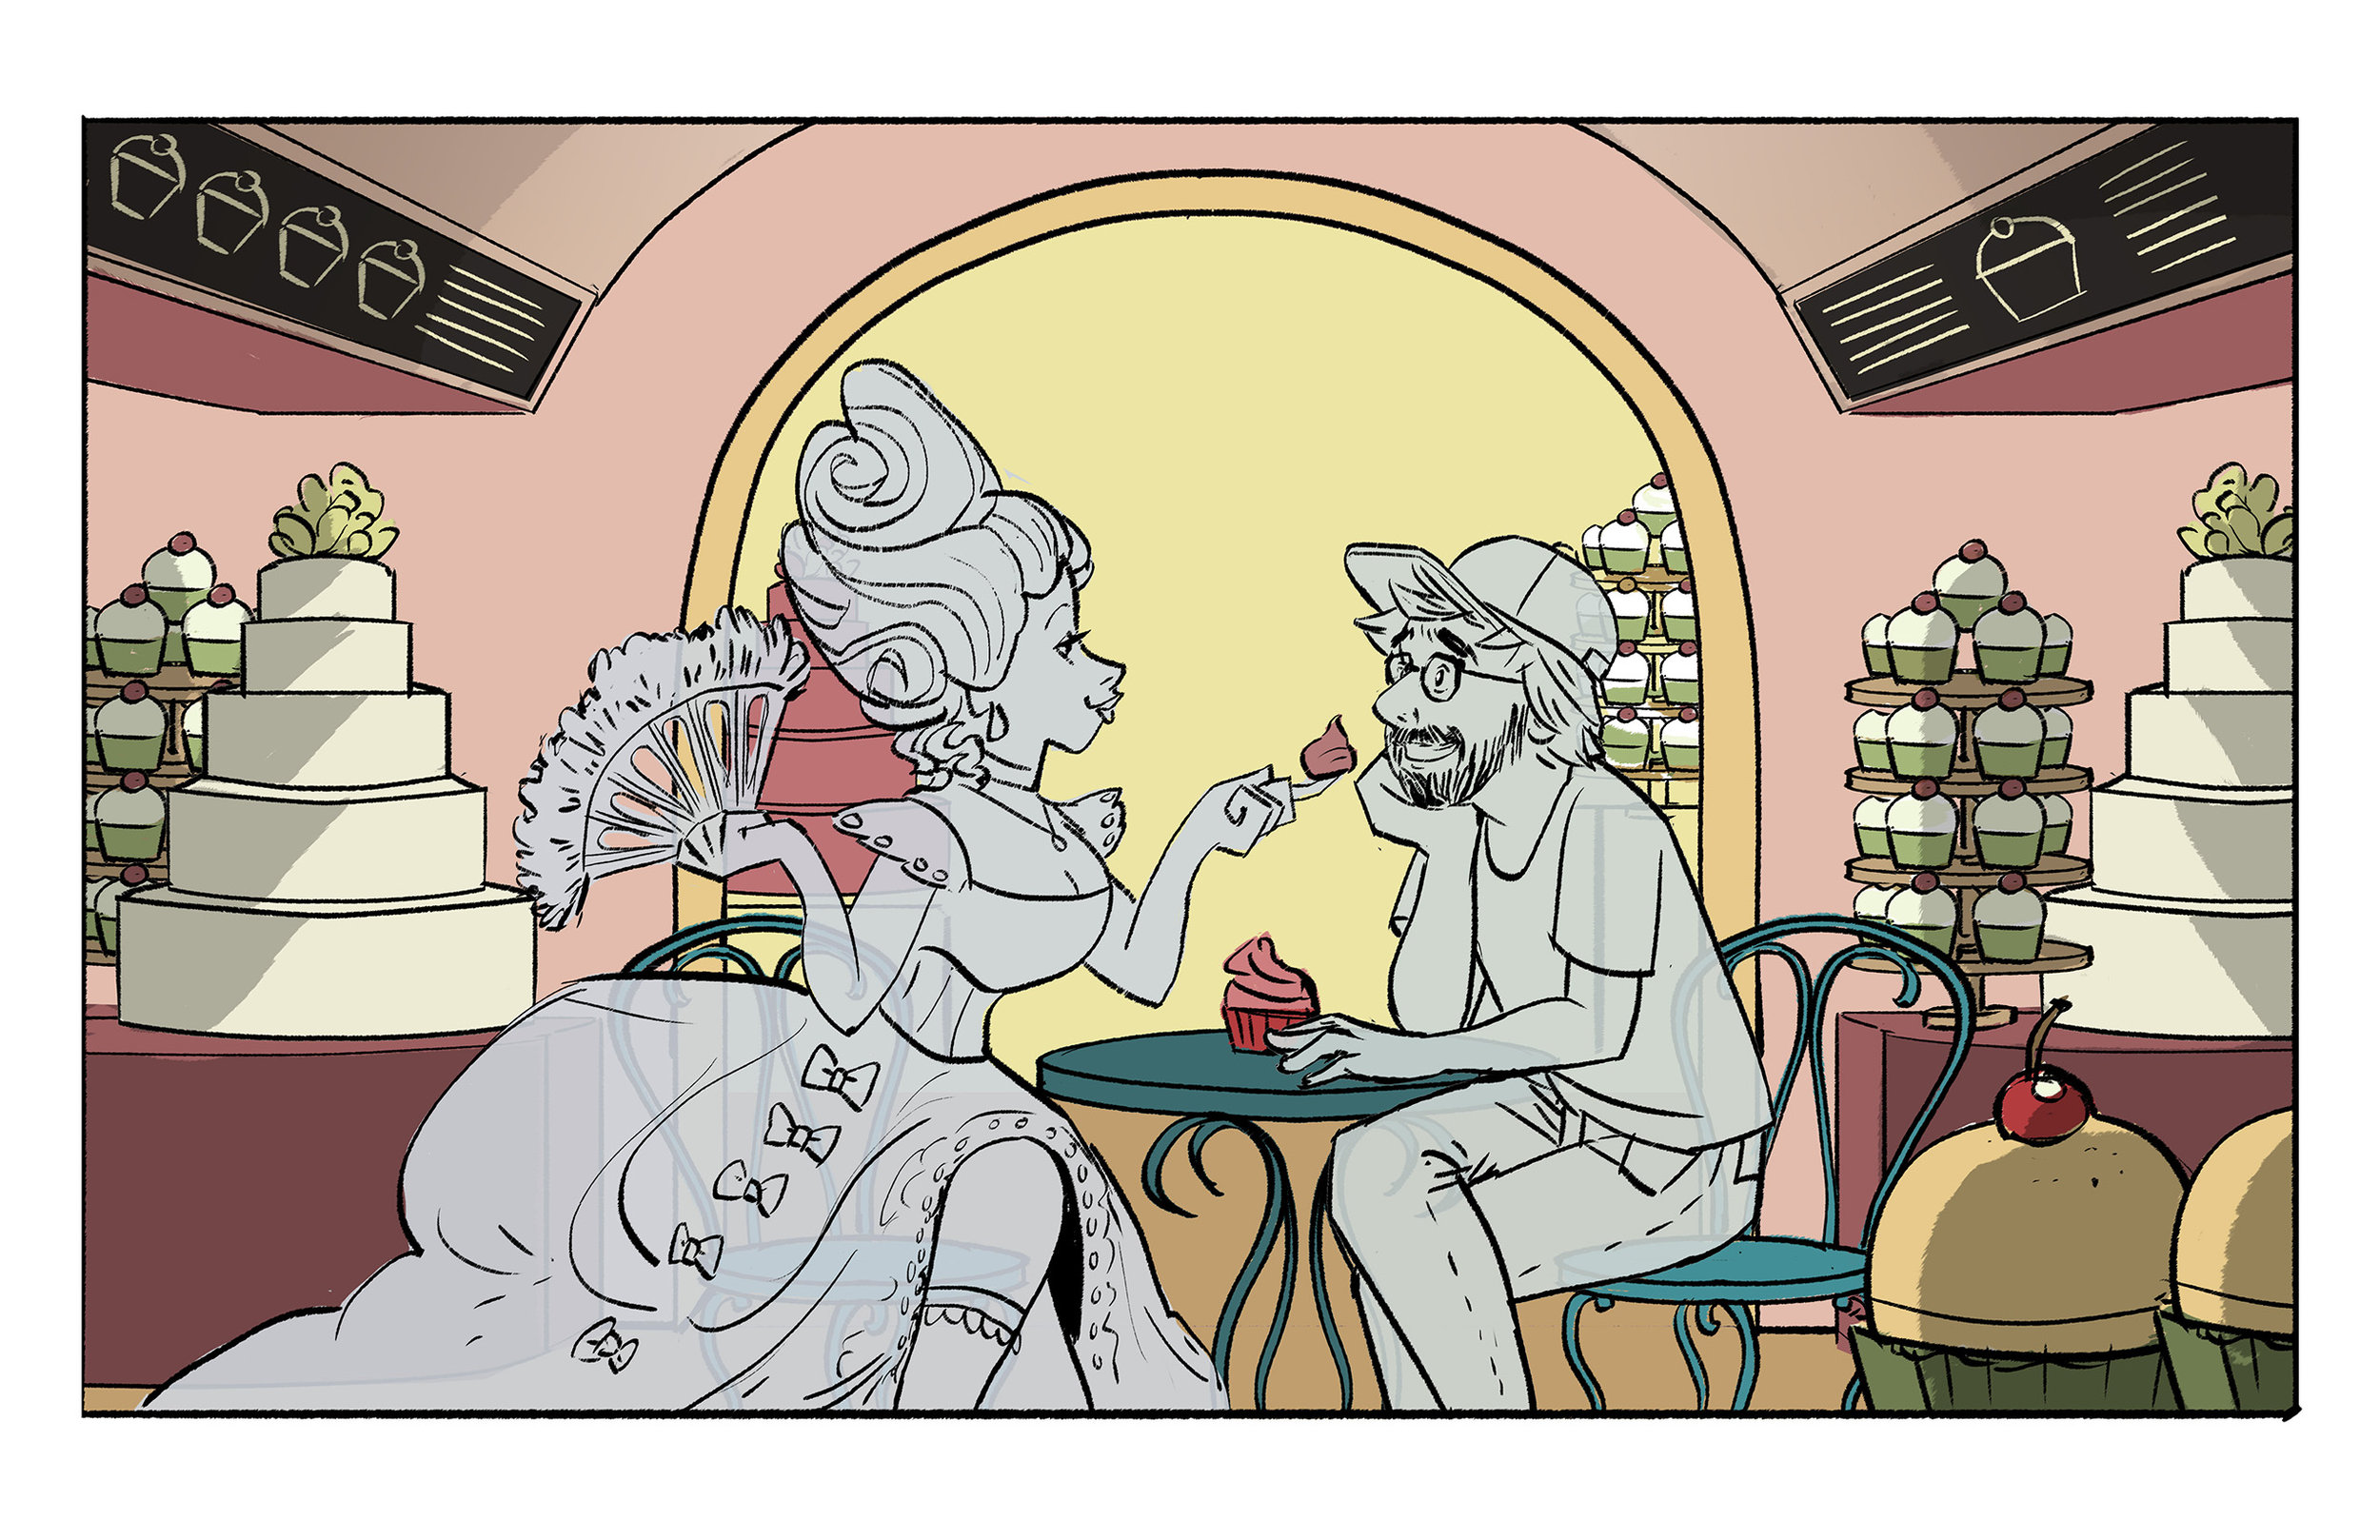 An after hours romantic date between Ghost Marie Antoinette and Ghost Fogel.